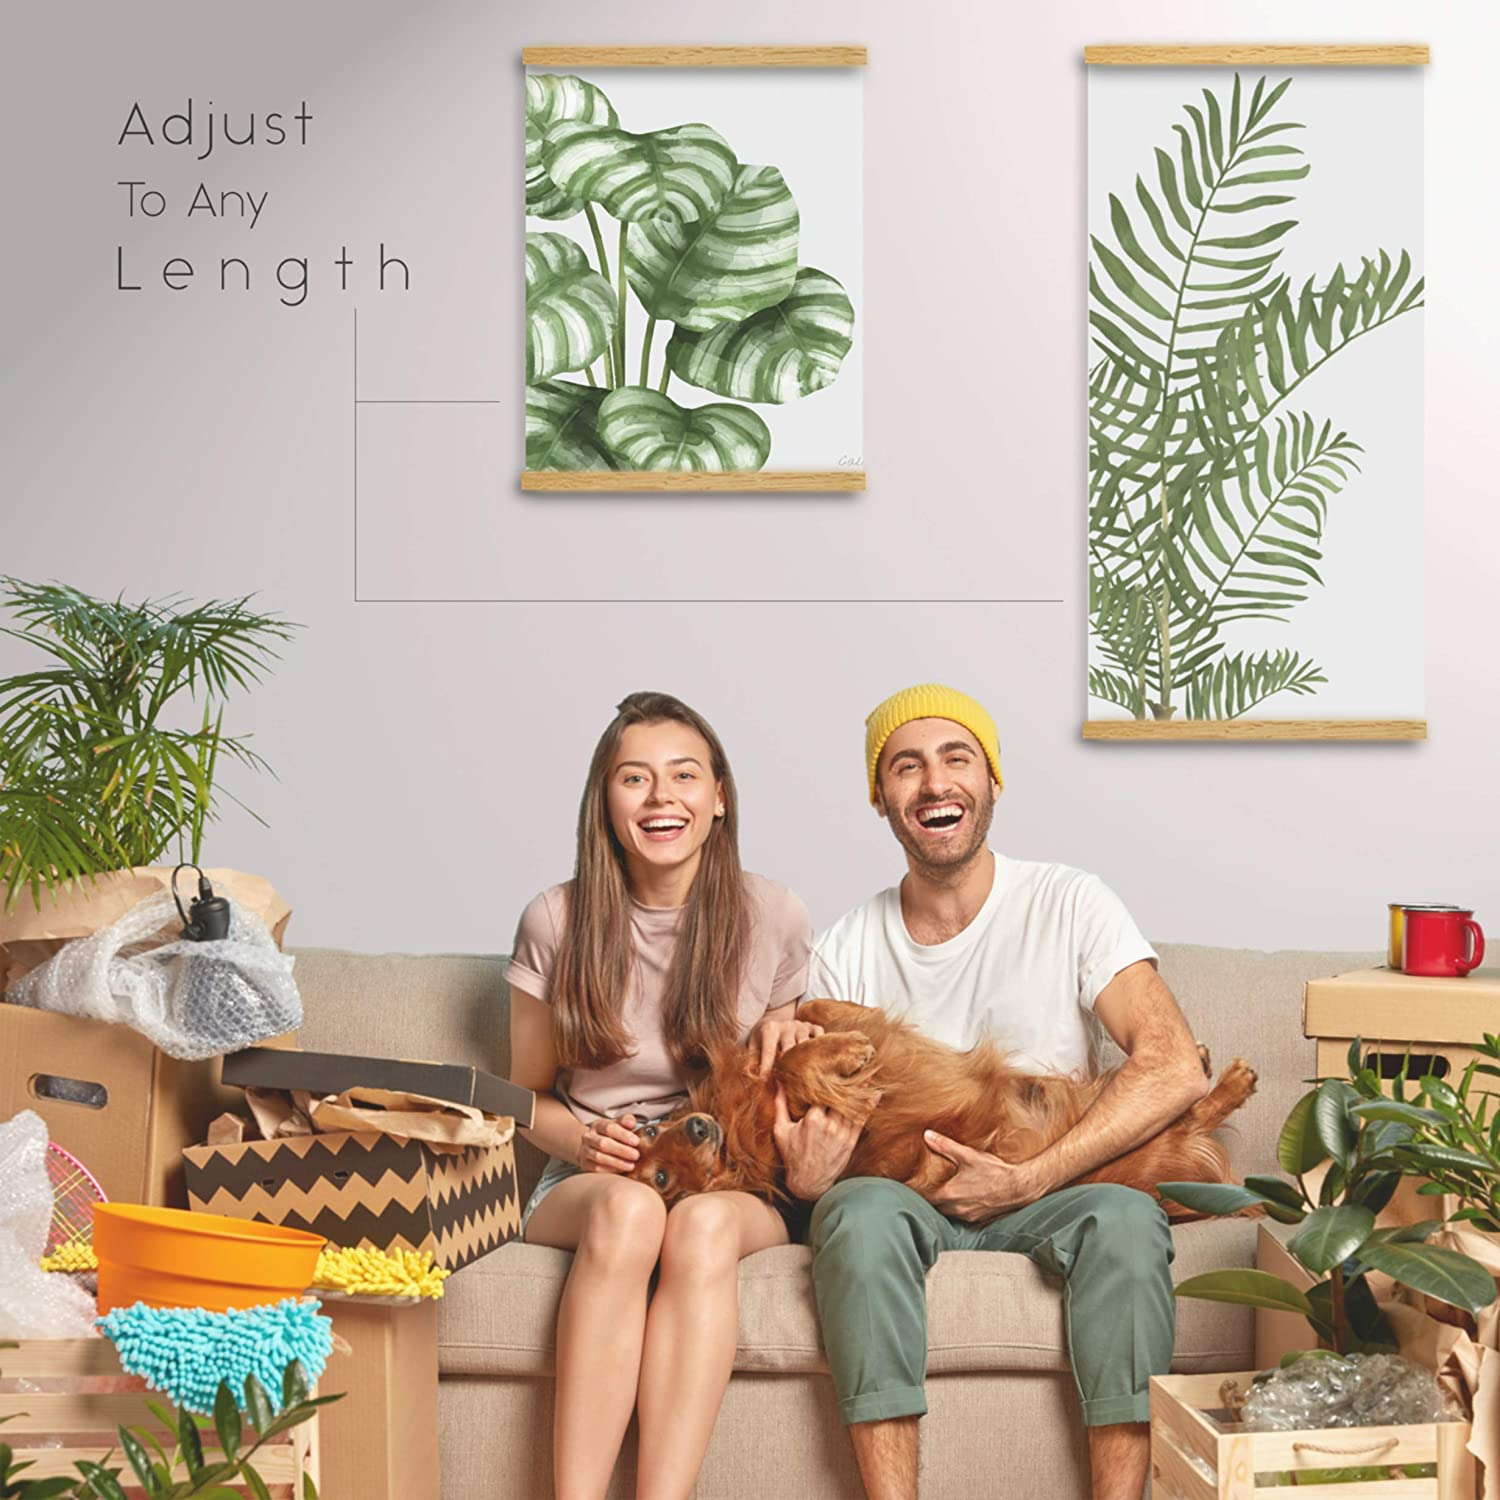 Poster Frame 12x18 12x36 12x16 by Magnetic Poster Hanger Wooden Dowel Hanger Scroll Get Creative Make Your Home Instantly More You Oak Light Wood 12 Inch